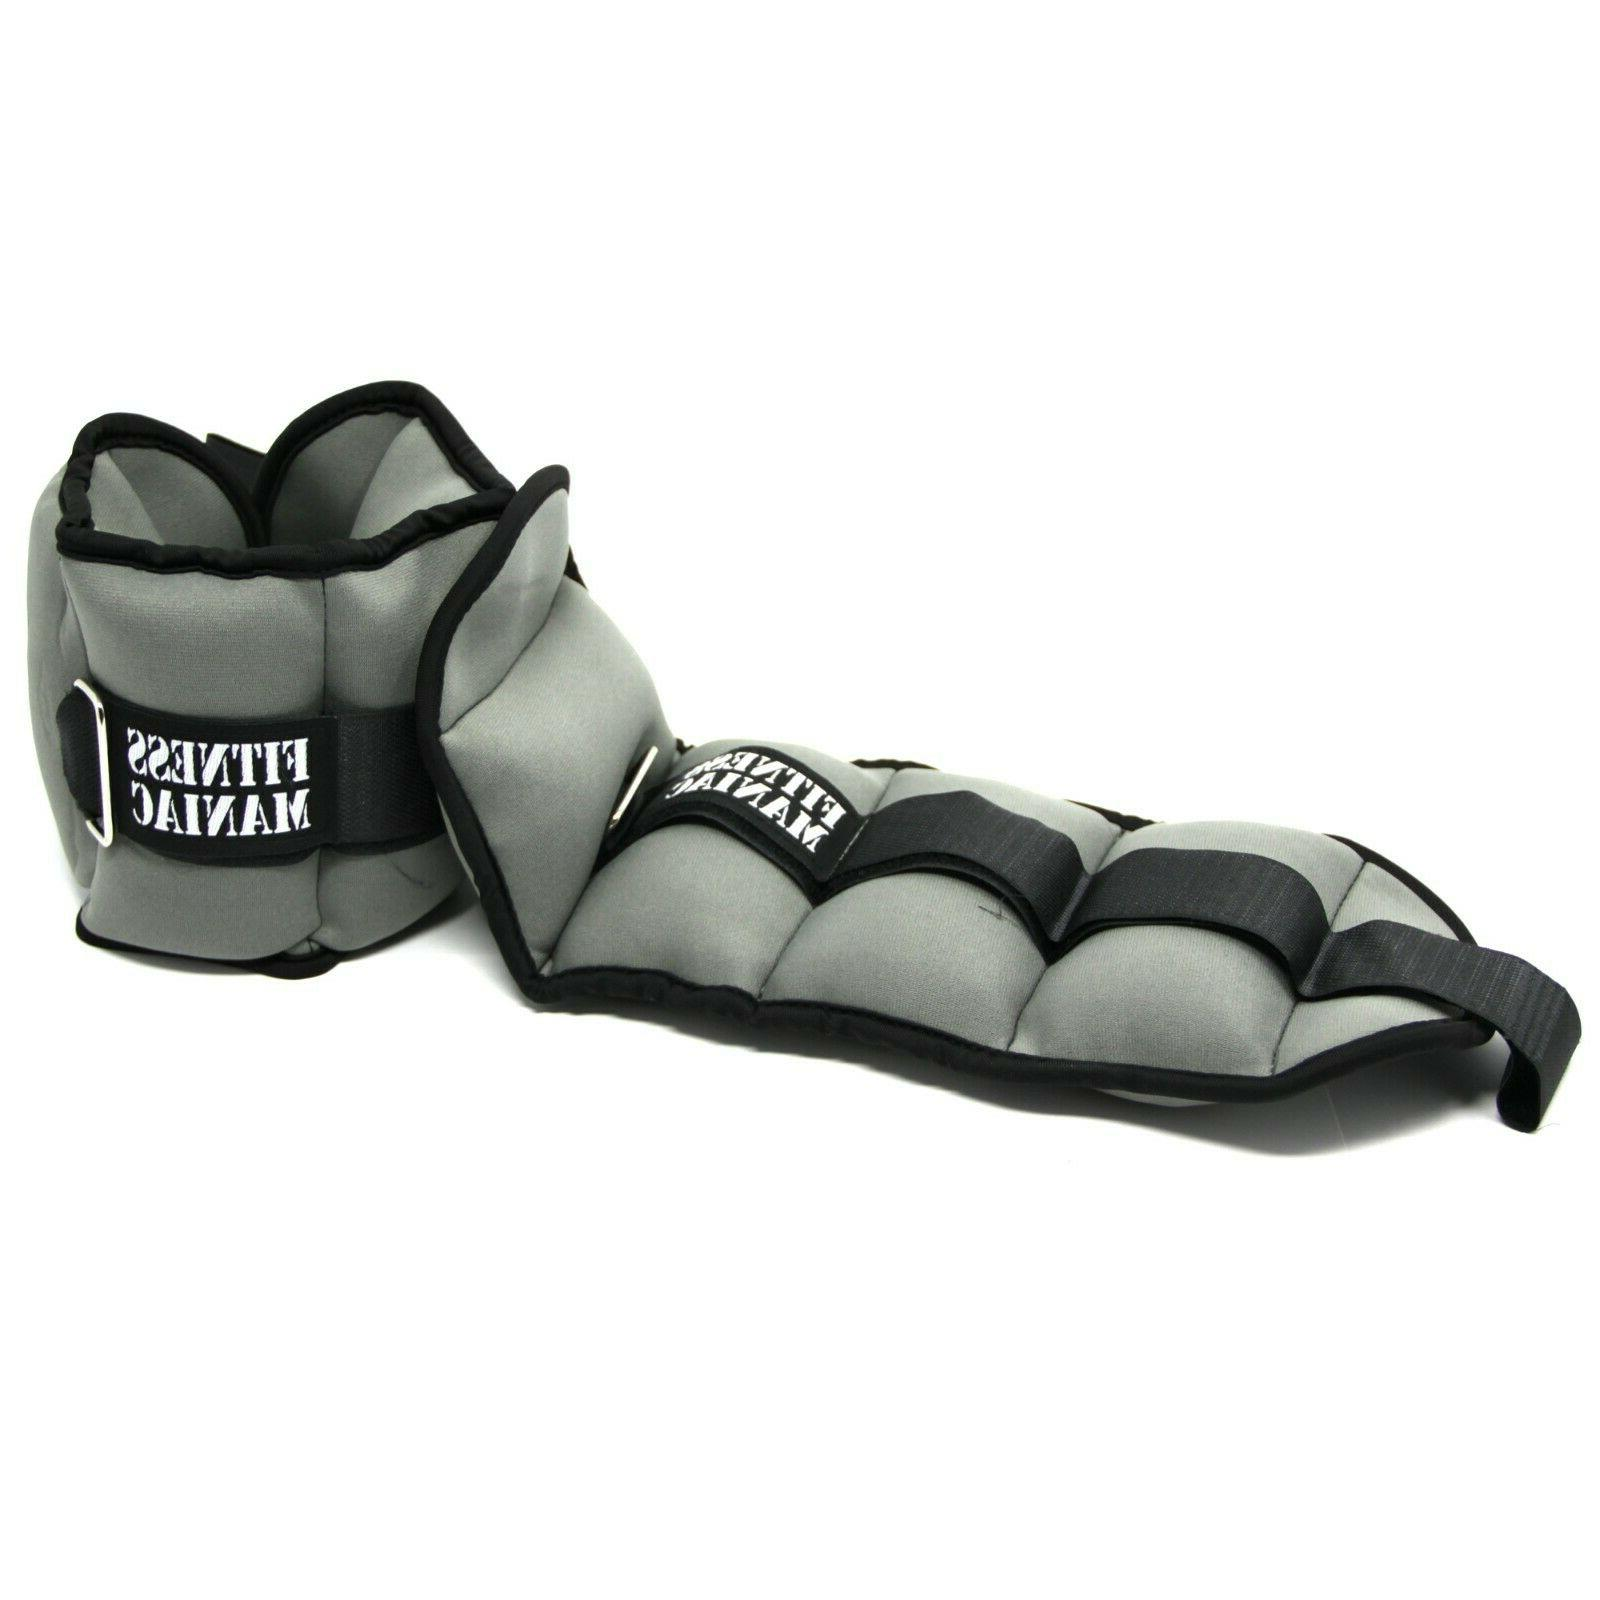 Adjustable Ankle Weights Fitness 4 8 lbs